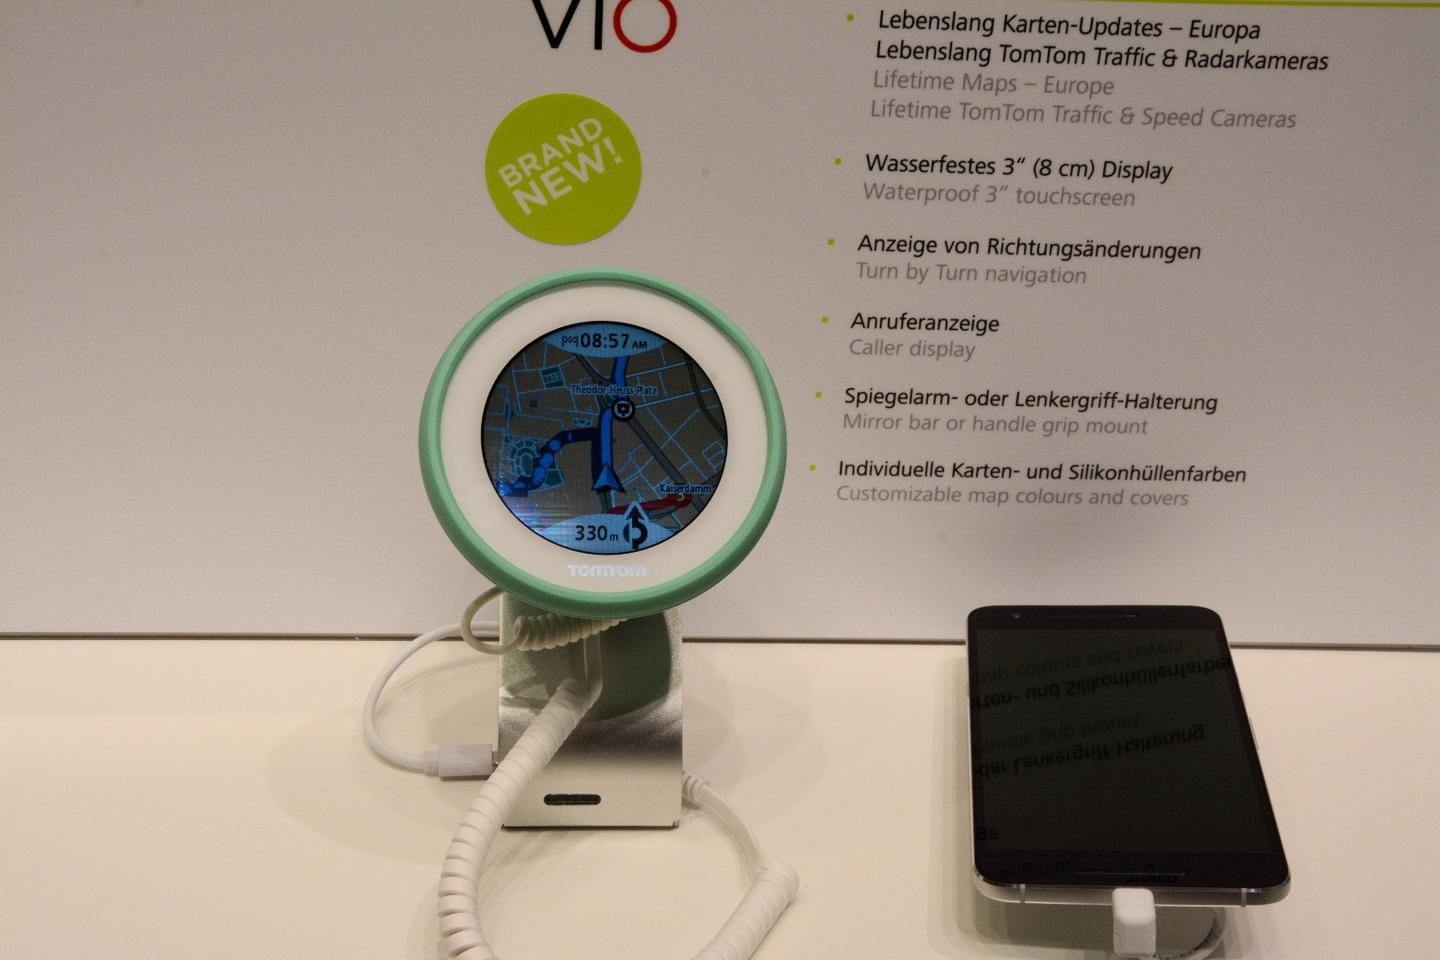 The TomTomVIOon show at IFA 2016